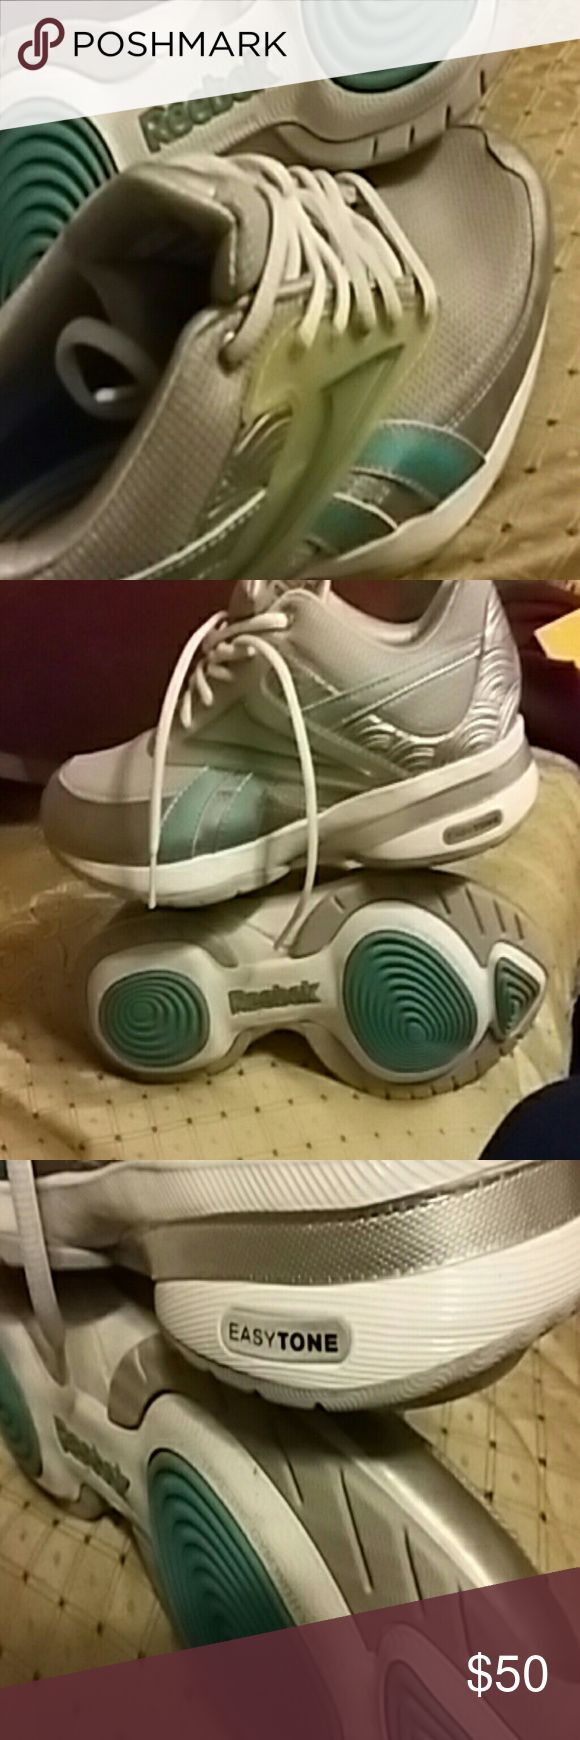 NWOT Reebok easytone ladies size 7 Your new ladies Reebok easytone grey mesh top with turquoise accents size 7 I received them as a gift and then my fat foot won't fit in them so they've never been used Reebok easytone Shoes Sneakers